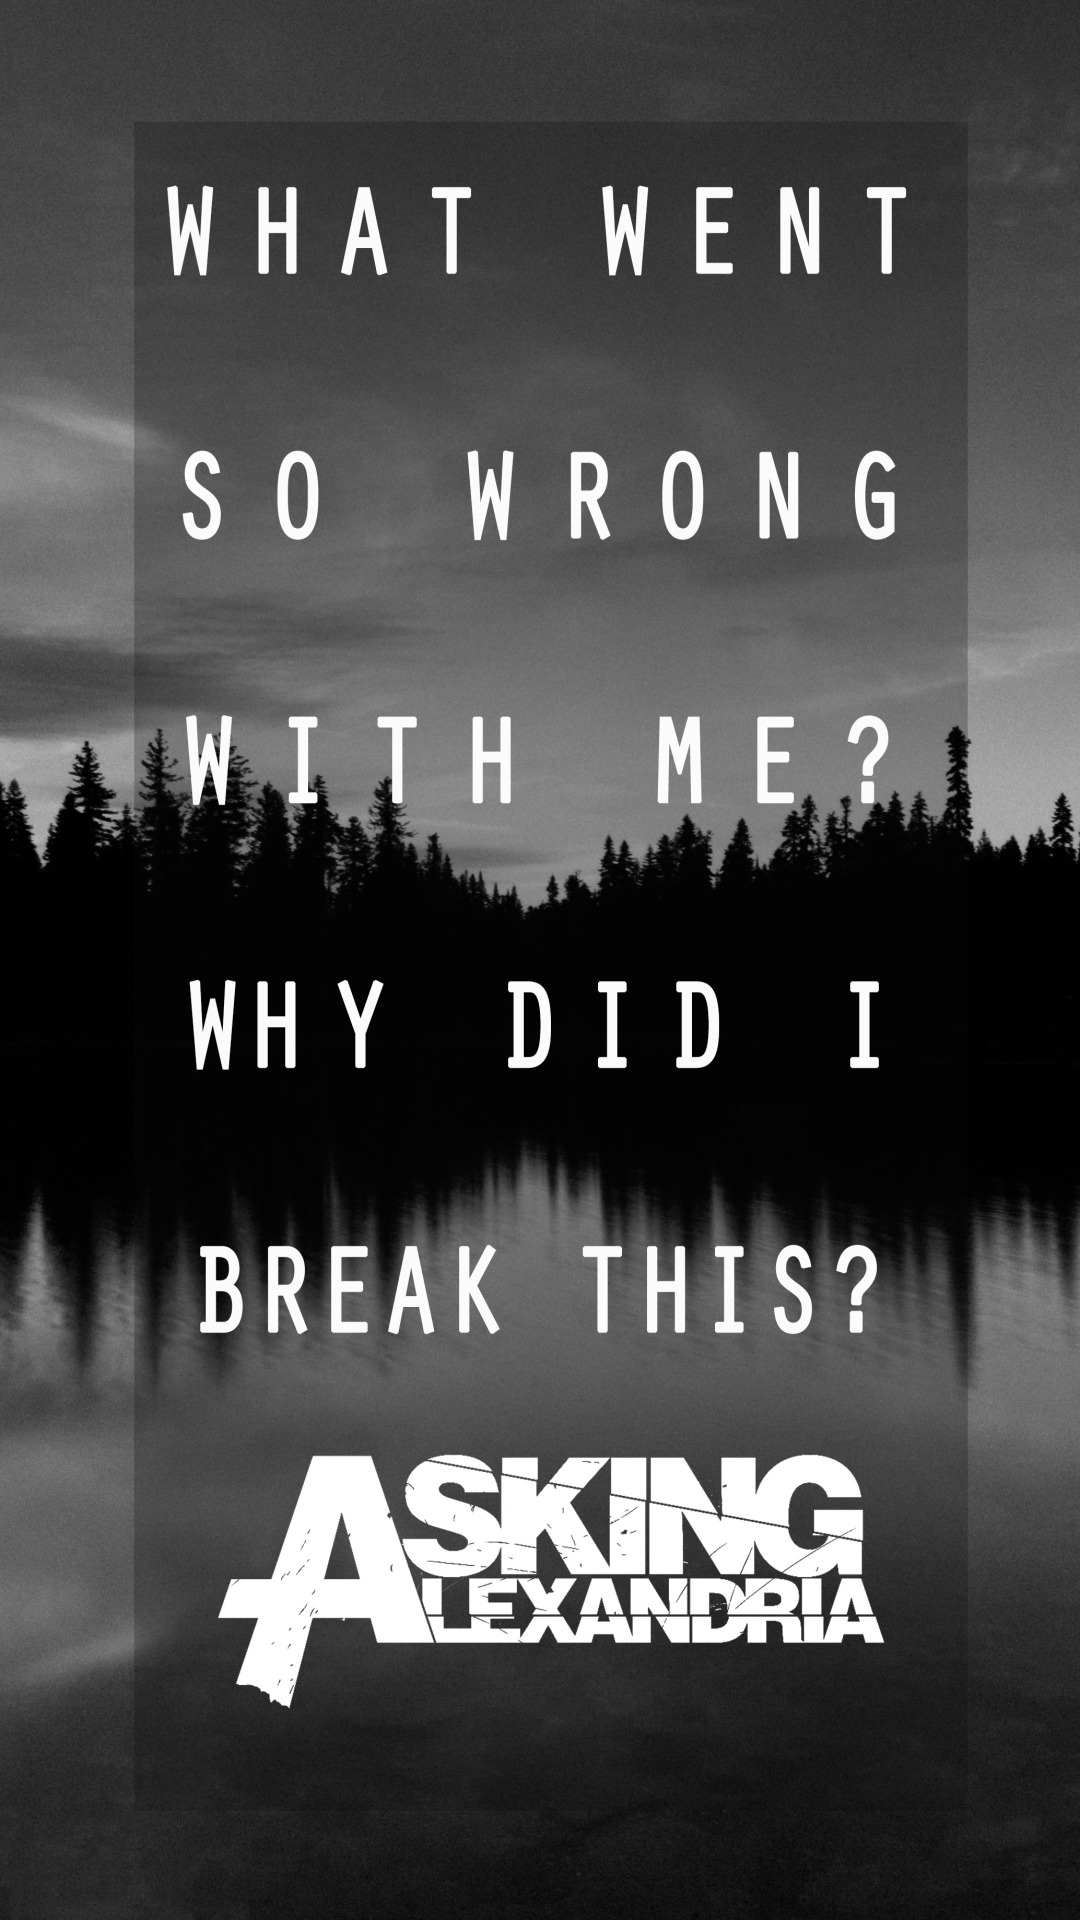 high definition asking alexandria iphone wallpaper - wallpaper.wiki